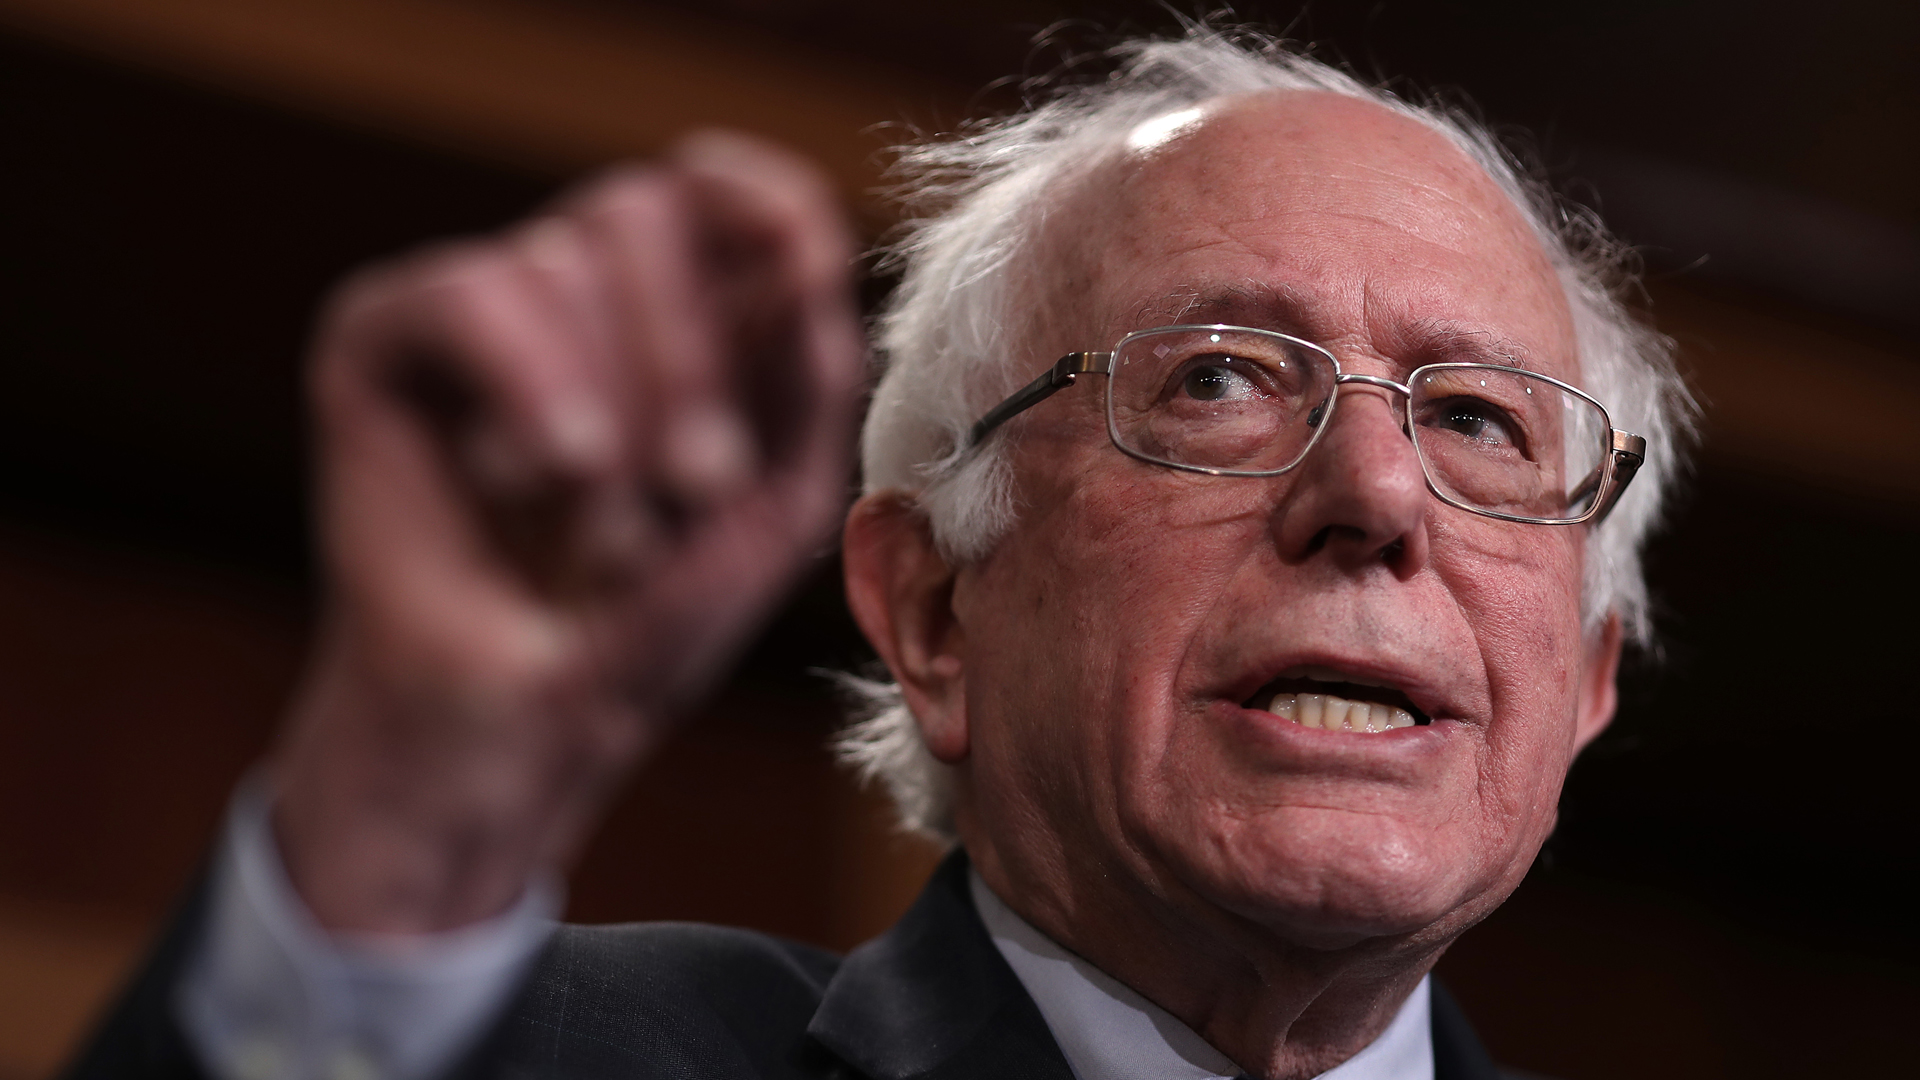 Sen. Bernie Sanders, I-Vermont, speaks during a press conference at the U.S. Capitol on January 30, 2019. (Credit: Win McNamee/Getty Images)